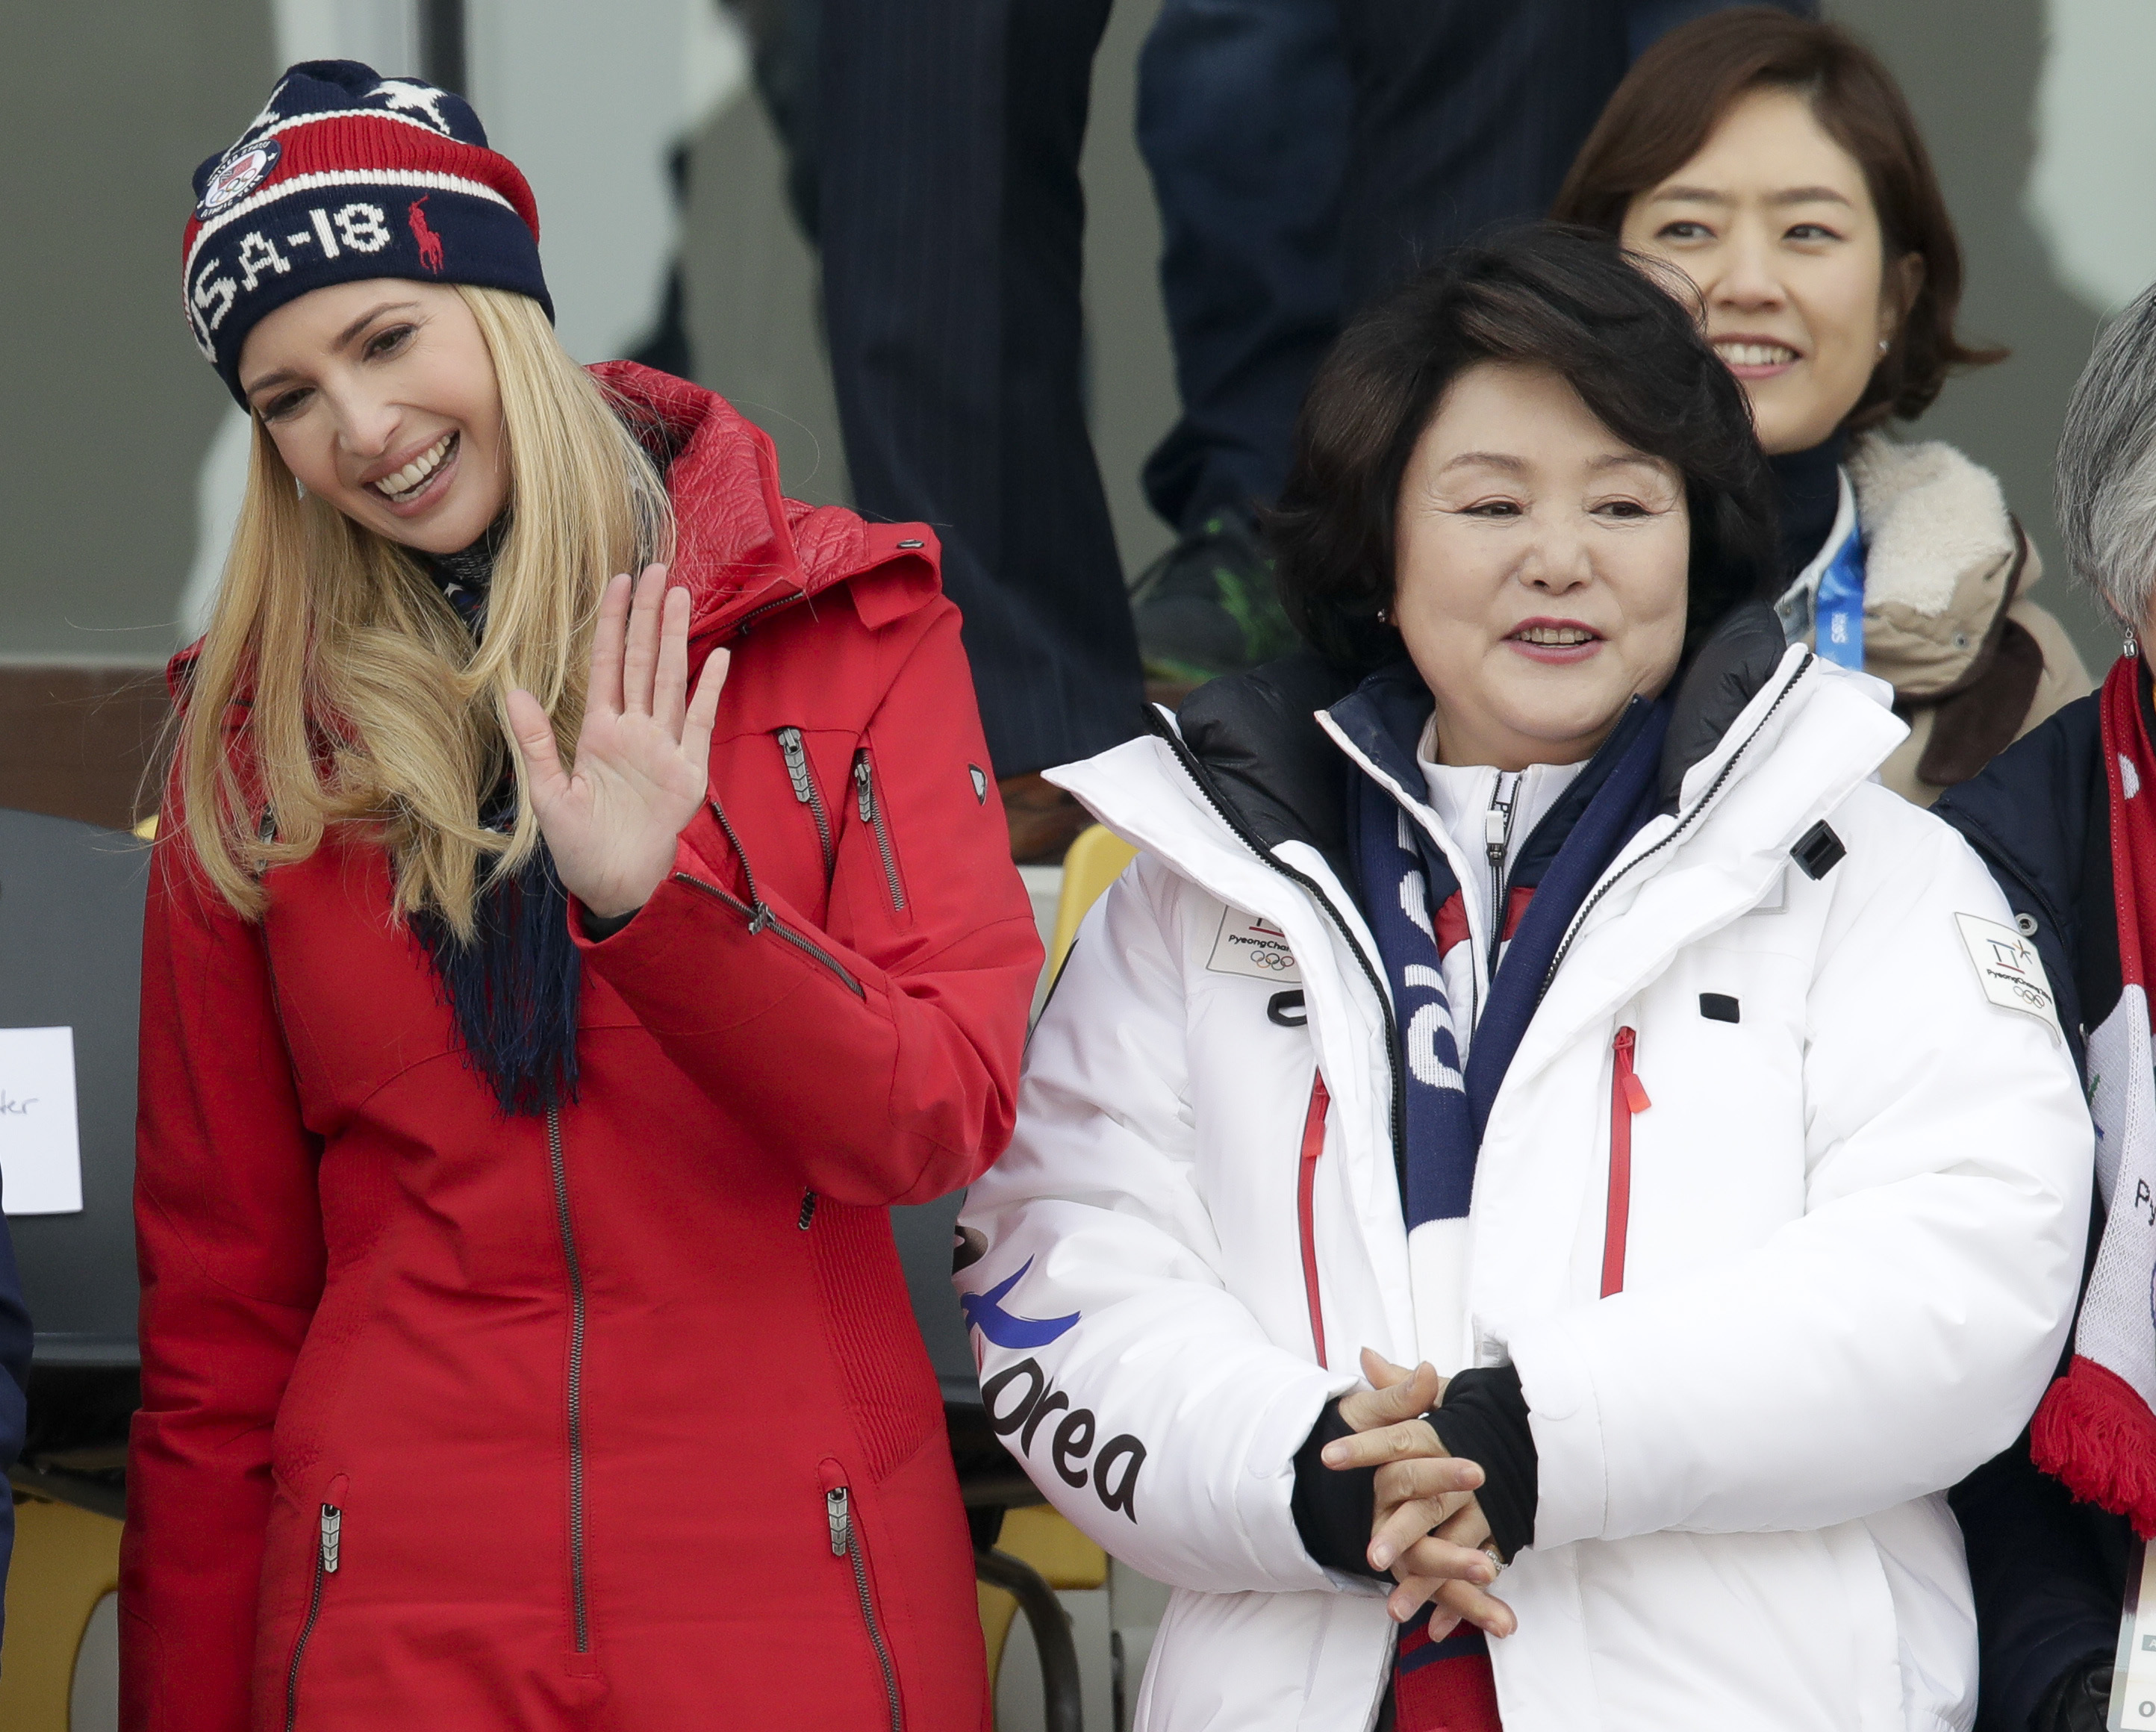 Ivanka Trump, left, waves with Kim Jung-sook, wife of the South Korean President during the men's Big Air snowboard competition at the 2018 Winter Olympics in Pyeongchang, South Korea, Saturday, Feb. 24, 2018. (AP Photo/Dmitri Lovetsky)